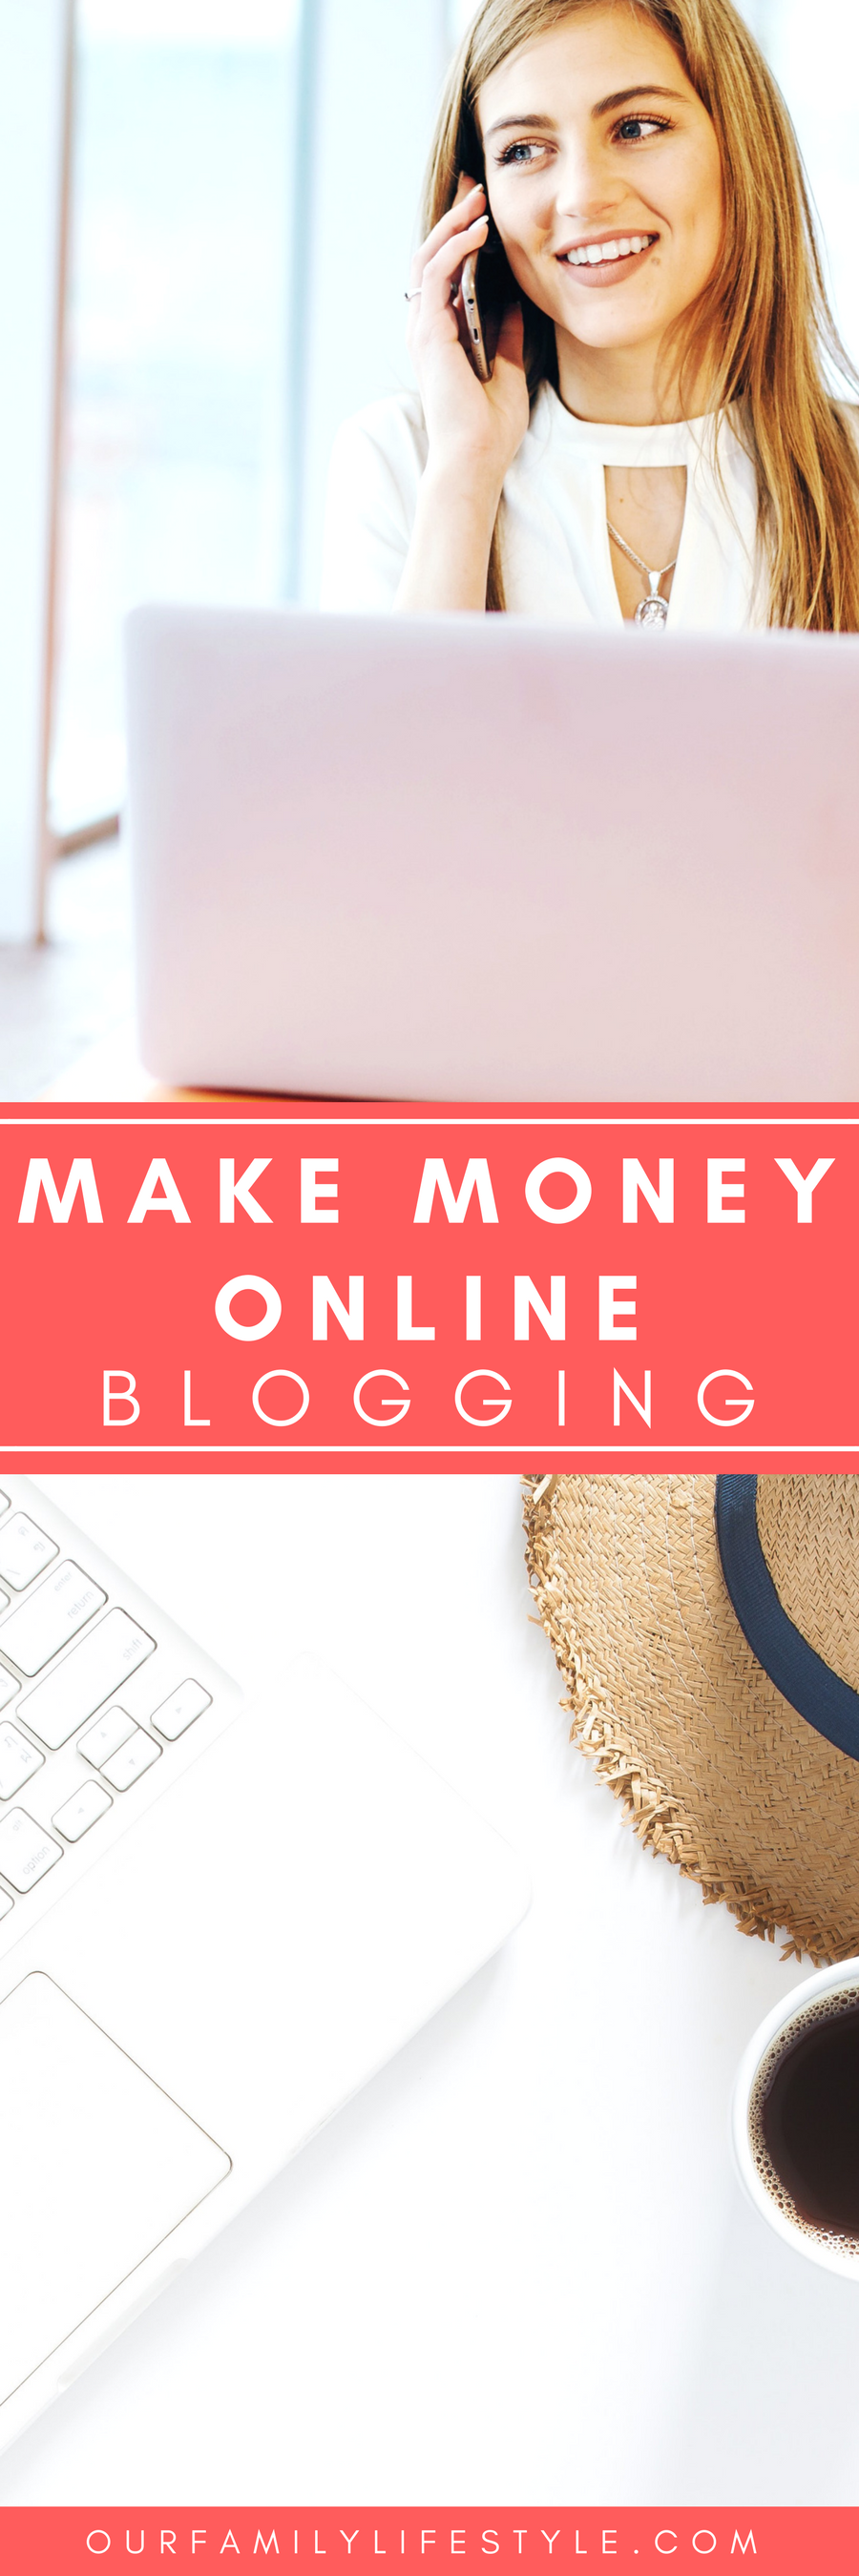 Blogging on a full-time basis is definitely not for everyone, but it can make you money online if you are the right person. Find out how to make money blogging.